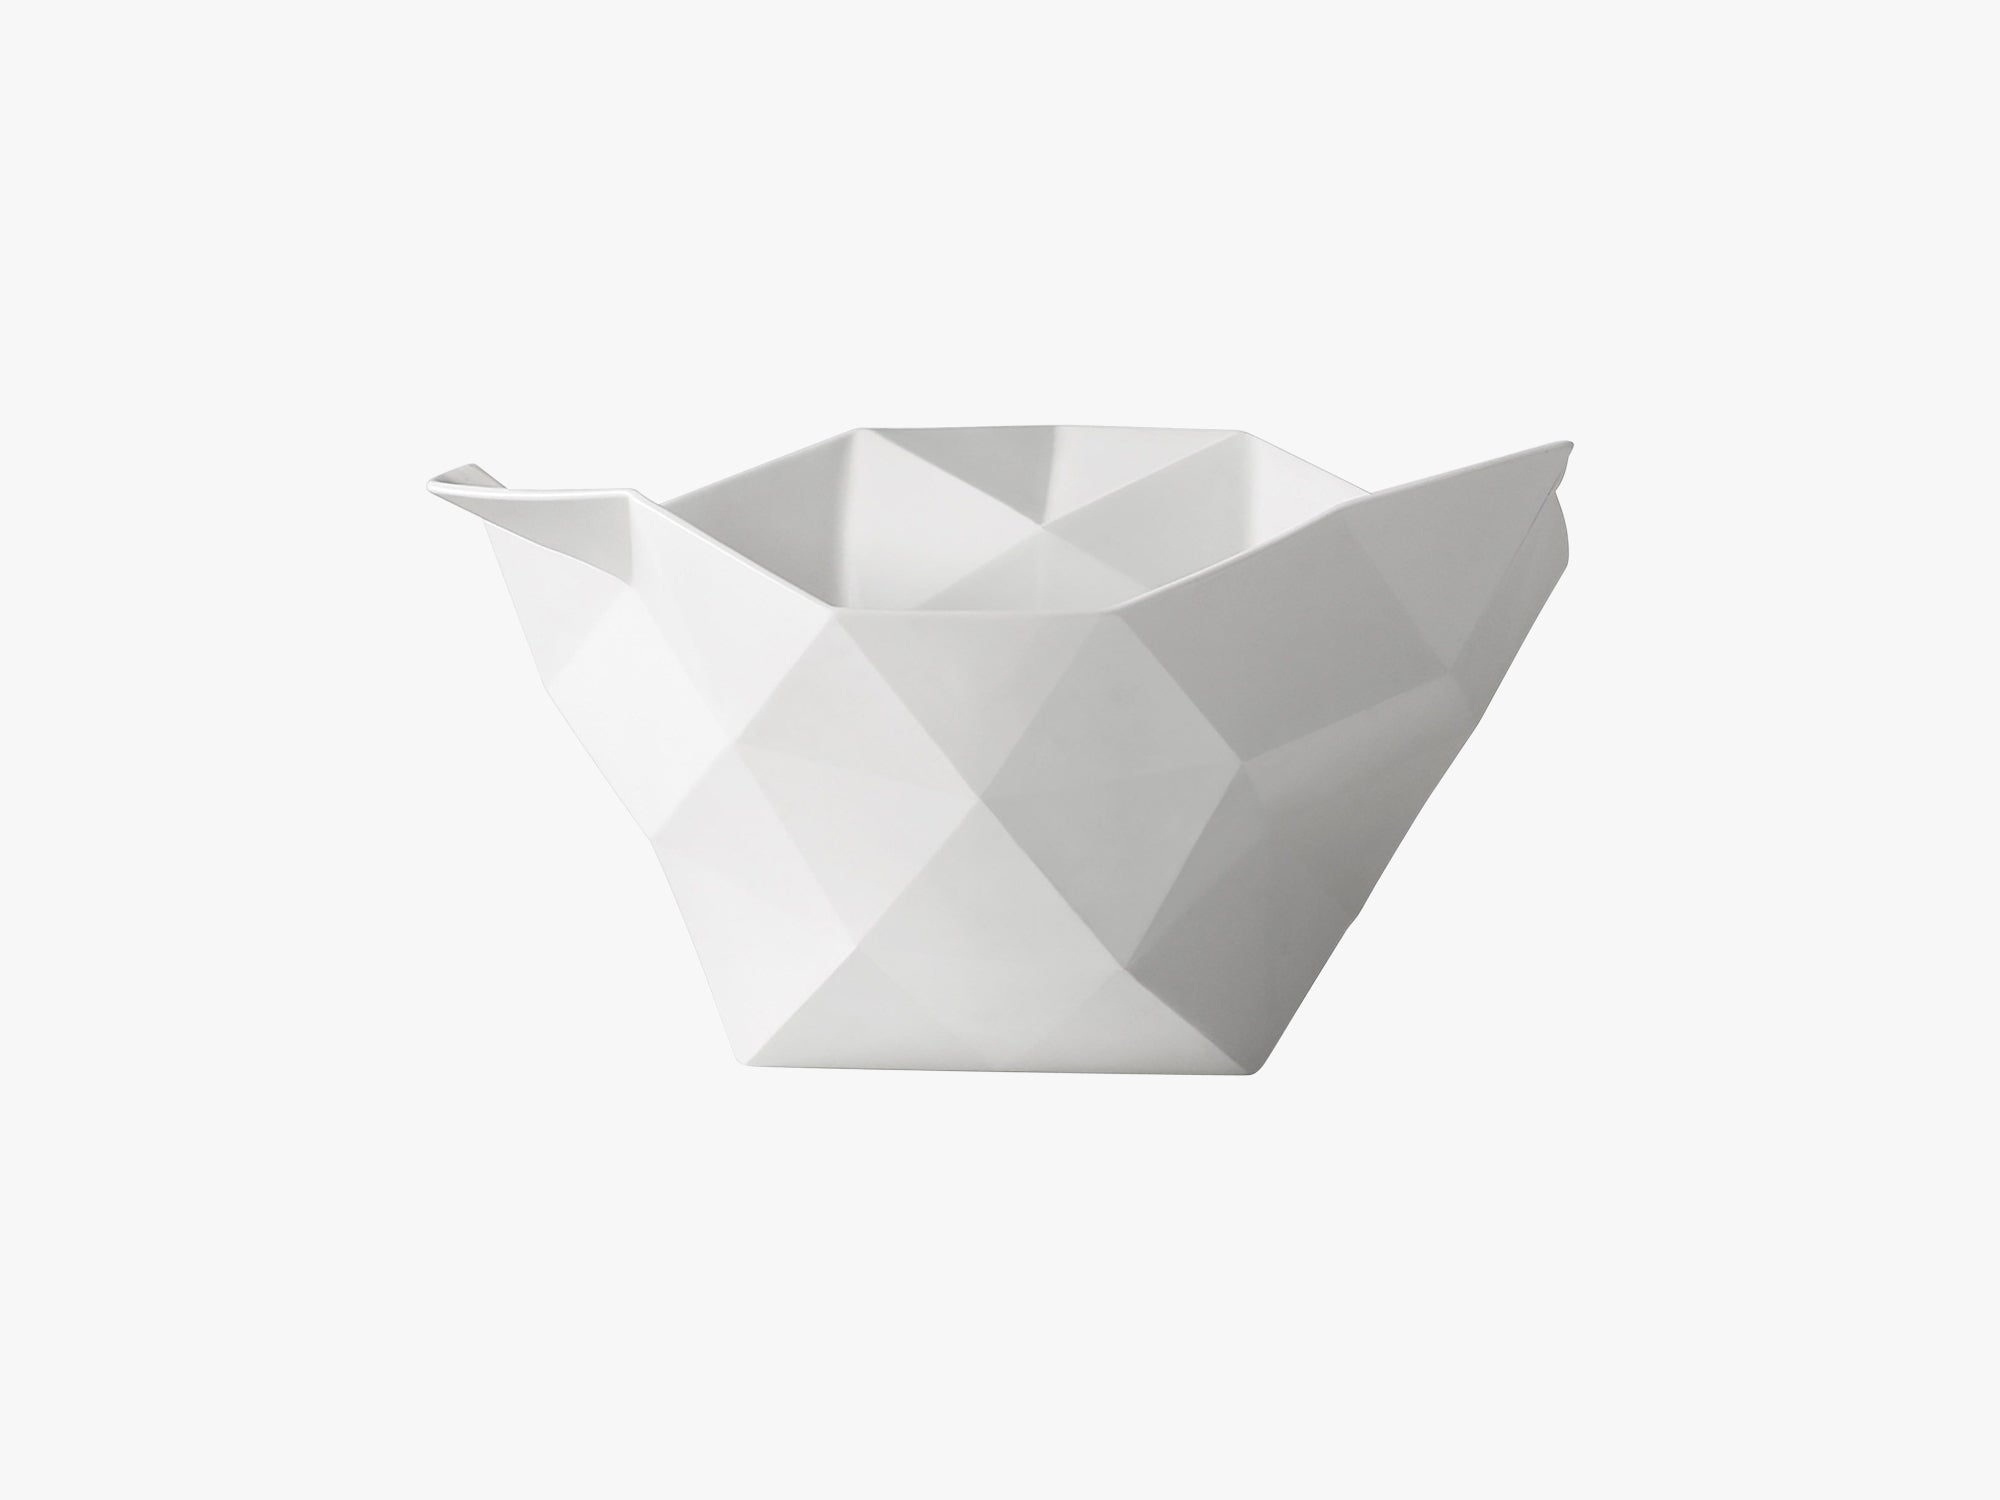 Crushed Bowl / Large, Large - White fra Muuto